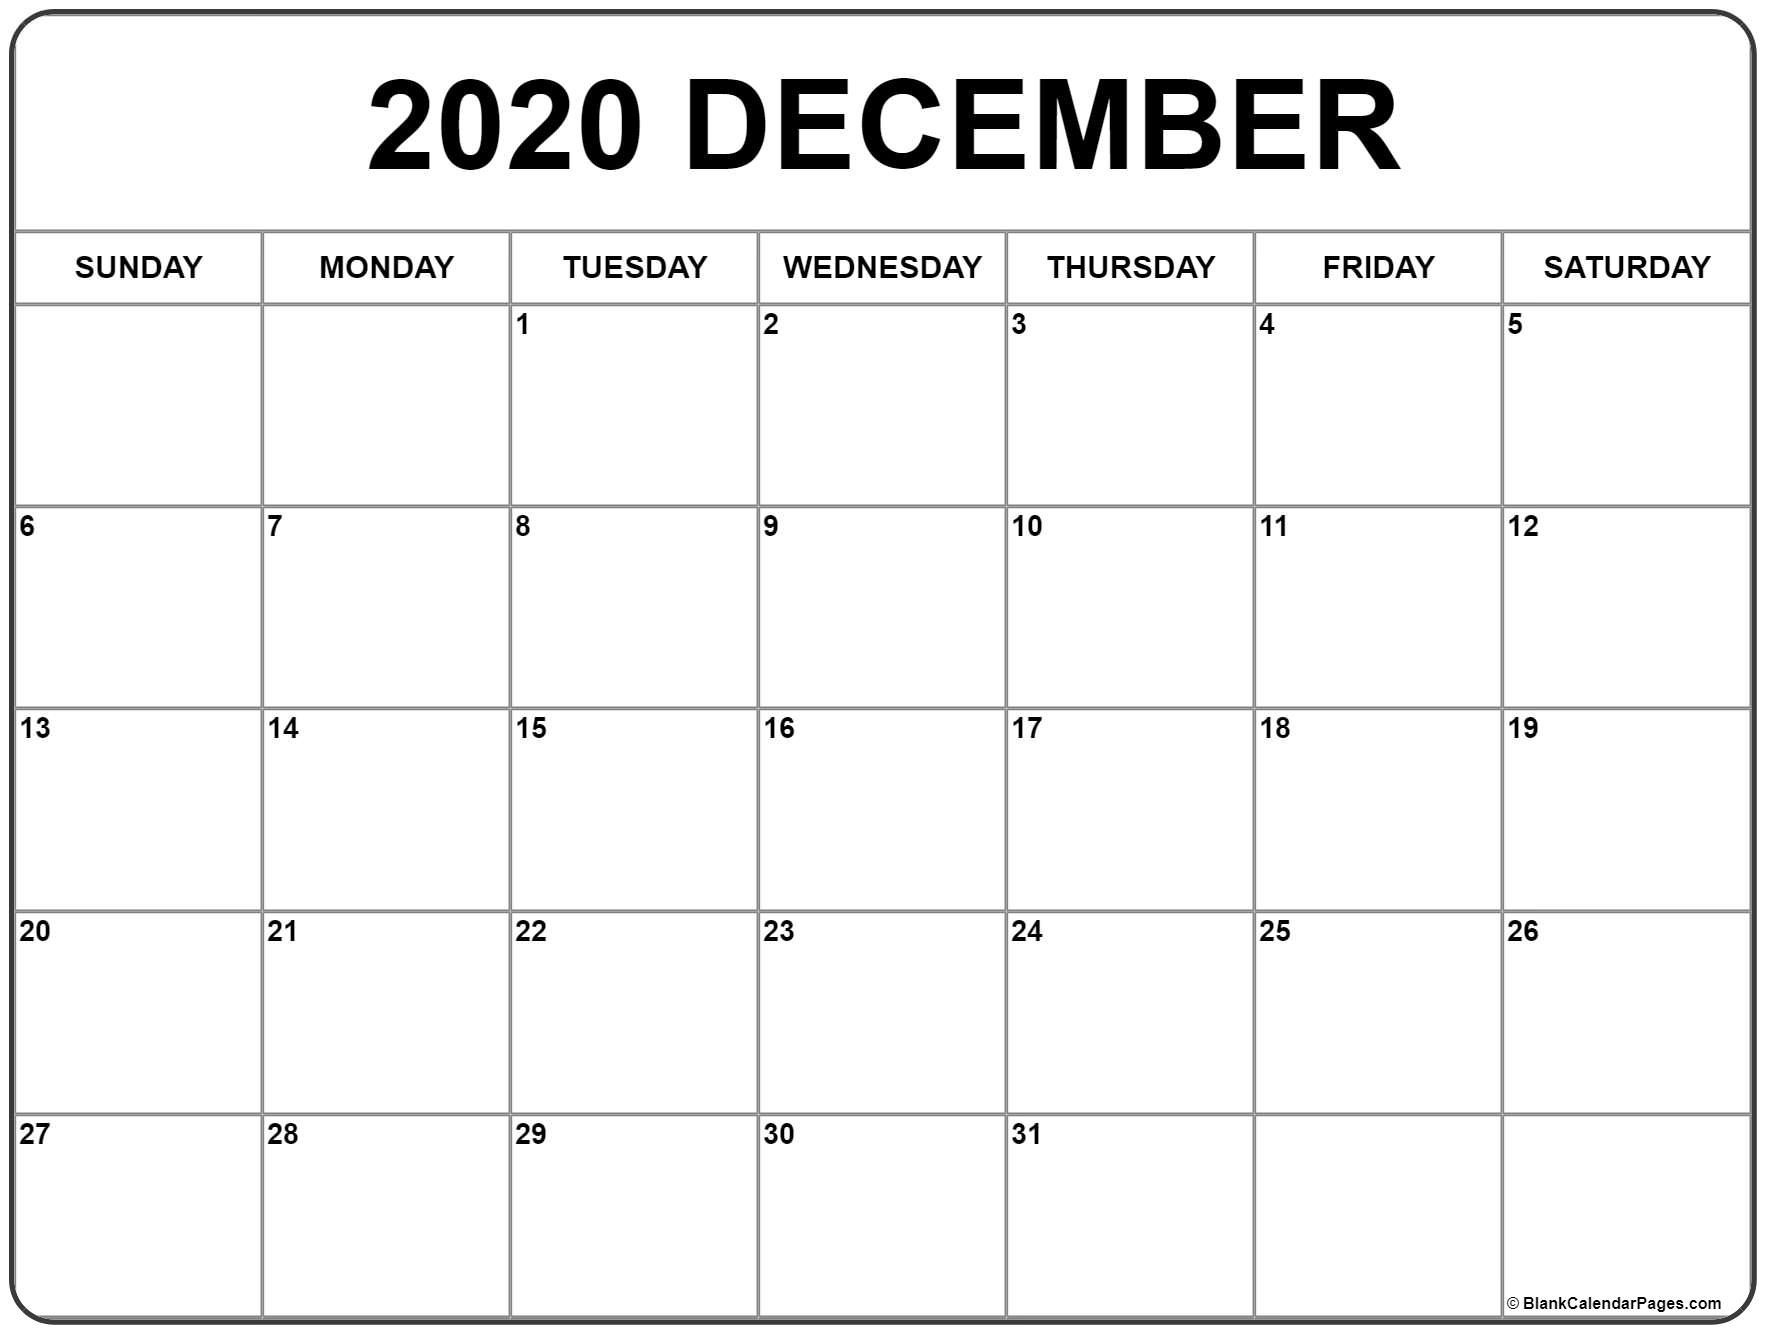 December 2020 Printable Calendar Template #2020Calendars_Blank Calendar Template By Month 2020